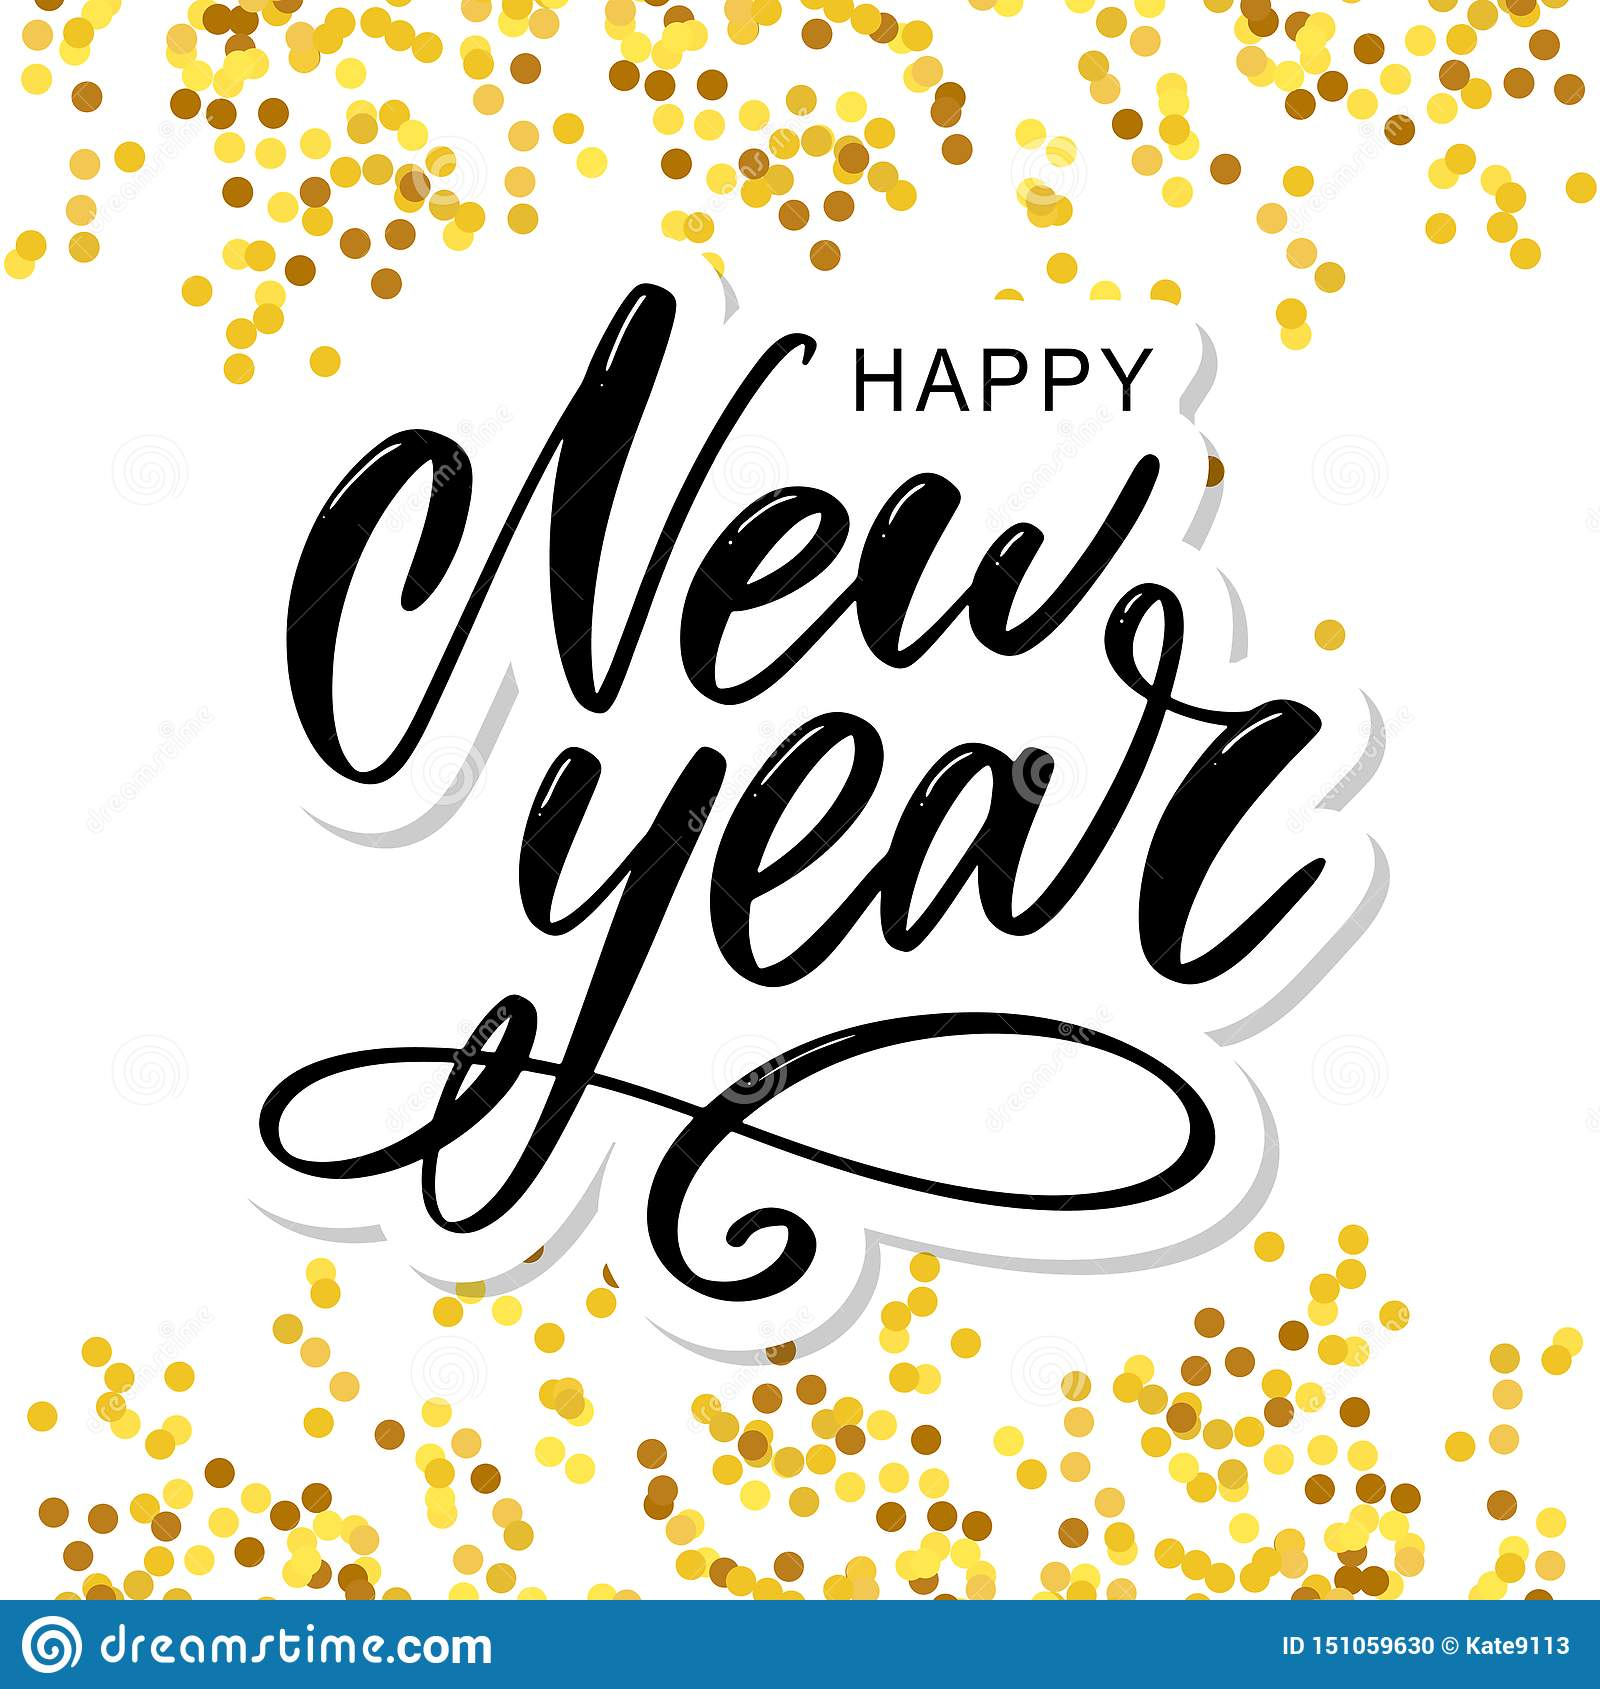 Southwest Merry Christmas And Happy New Year 2020 Pictures Free Happy 2020 New Year. Holiday Vector Illustration With Lettering